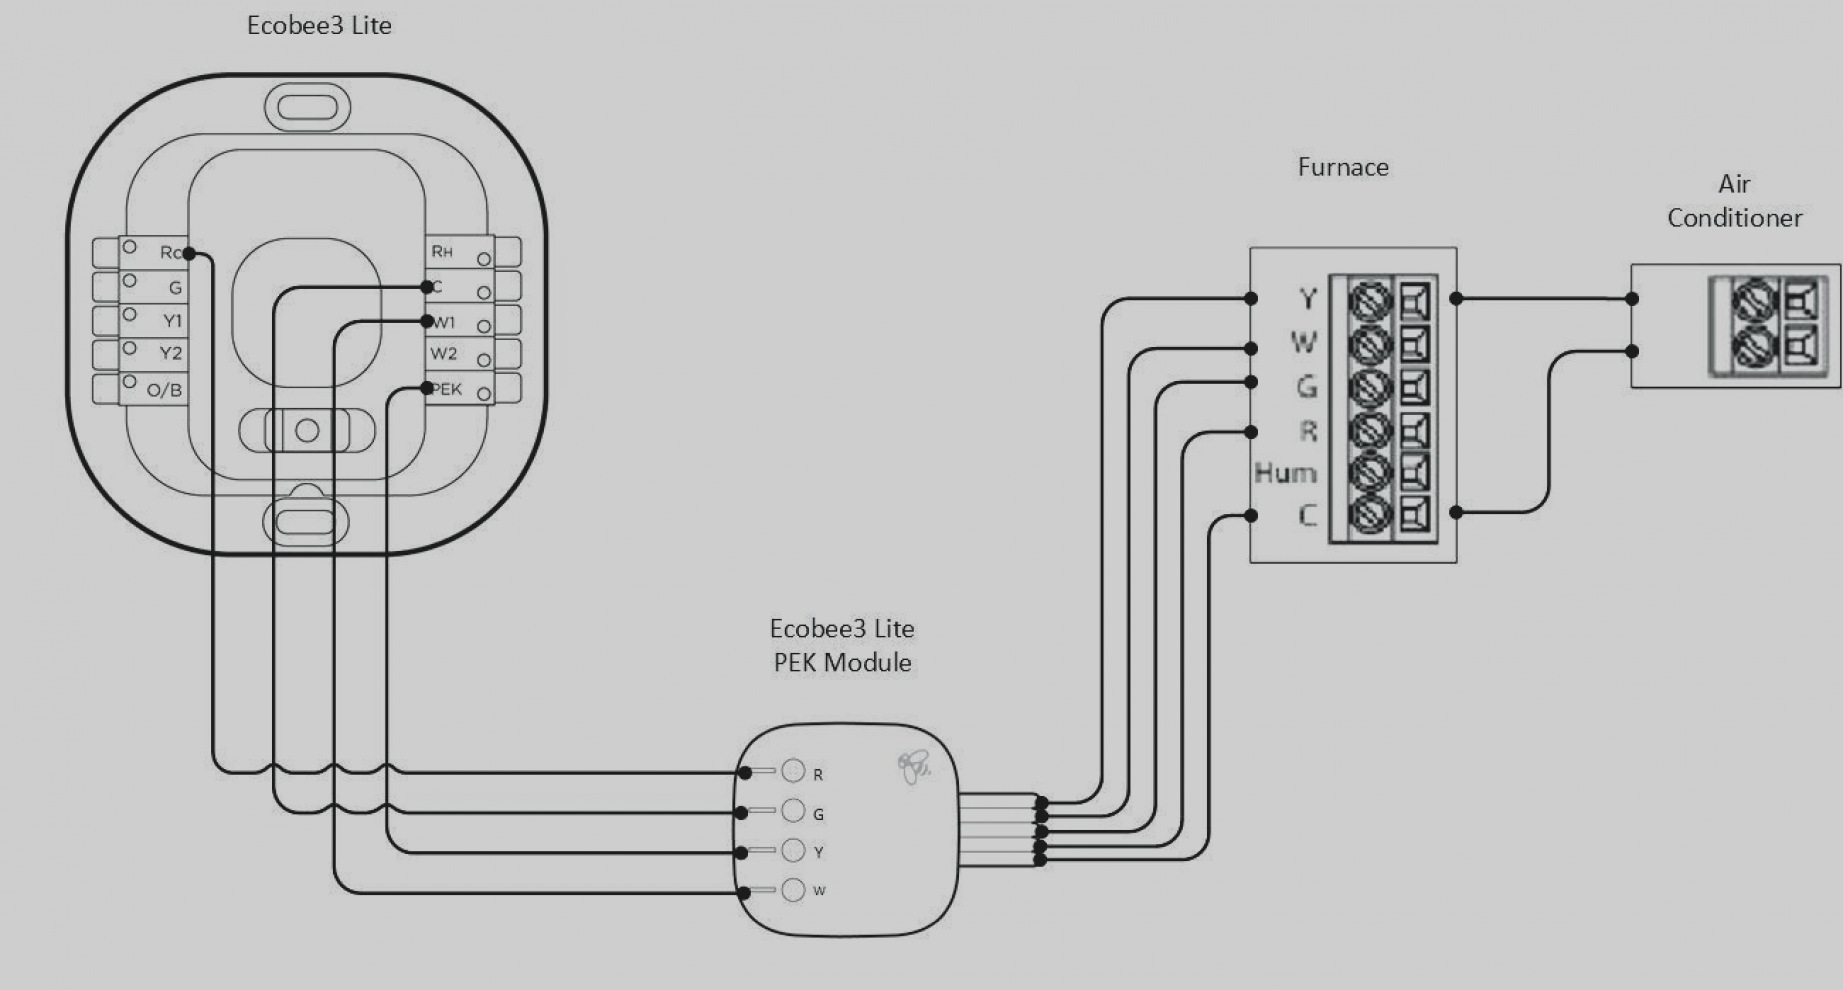 Wiring Diagram For Nest Thermostat With Humidifier Nest